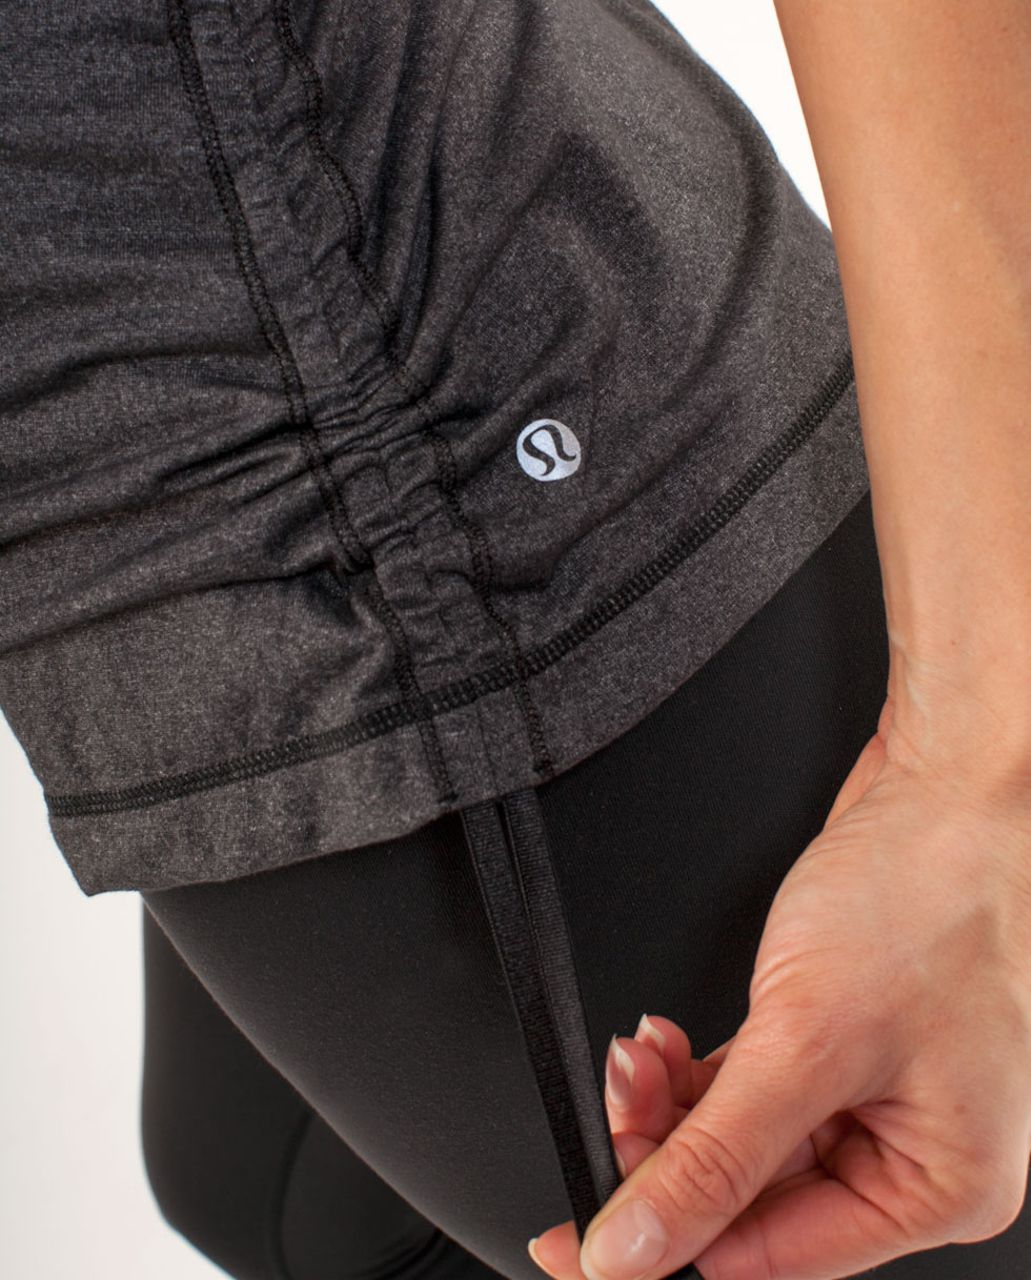 Lululemon Hot 'N Sweaty Tank - Black